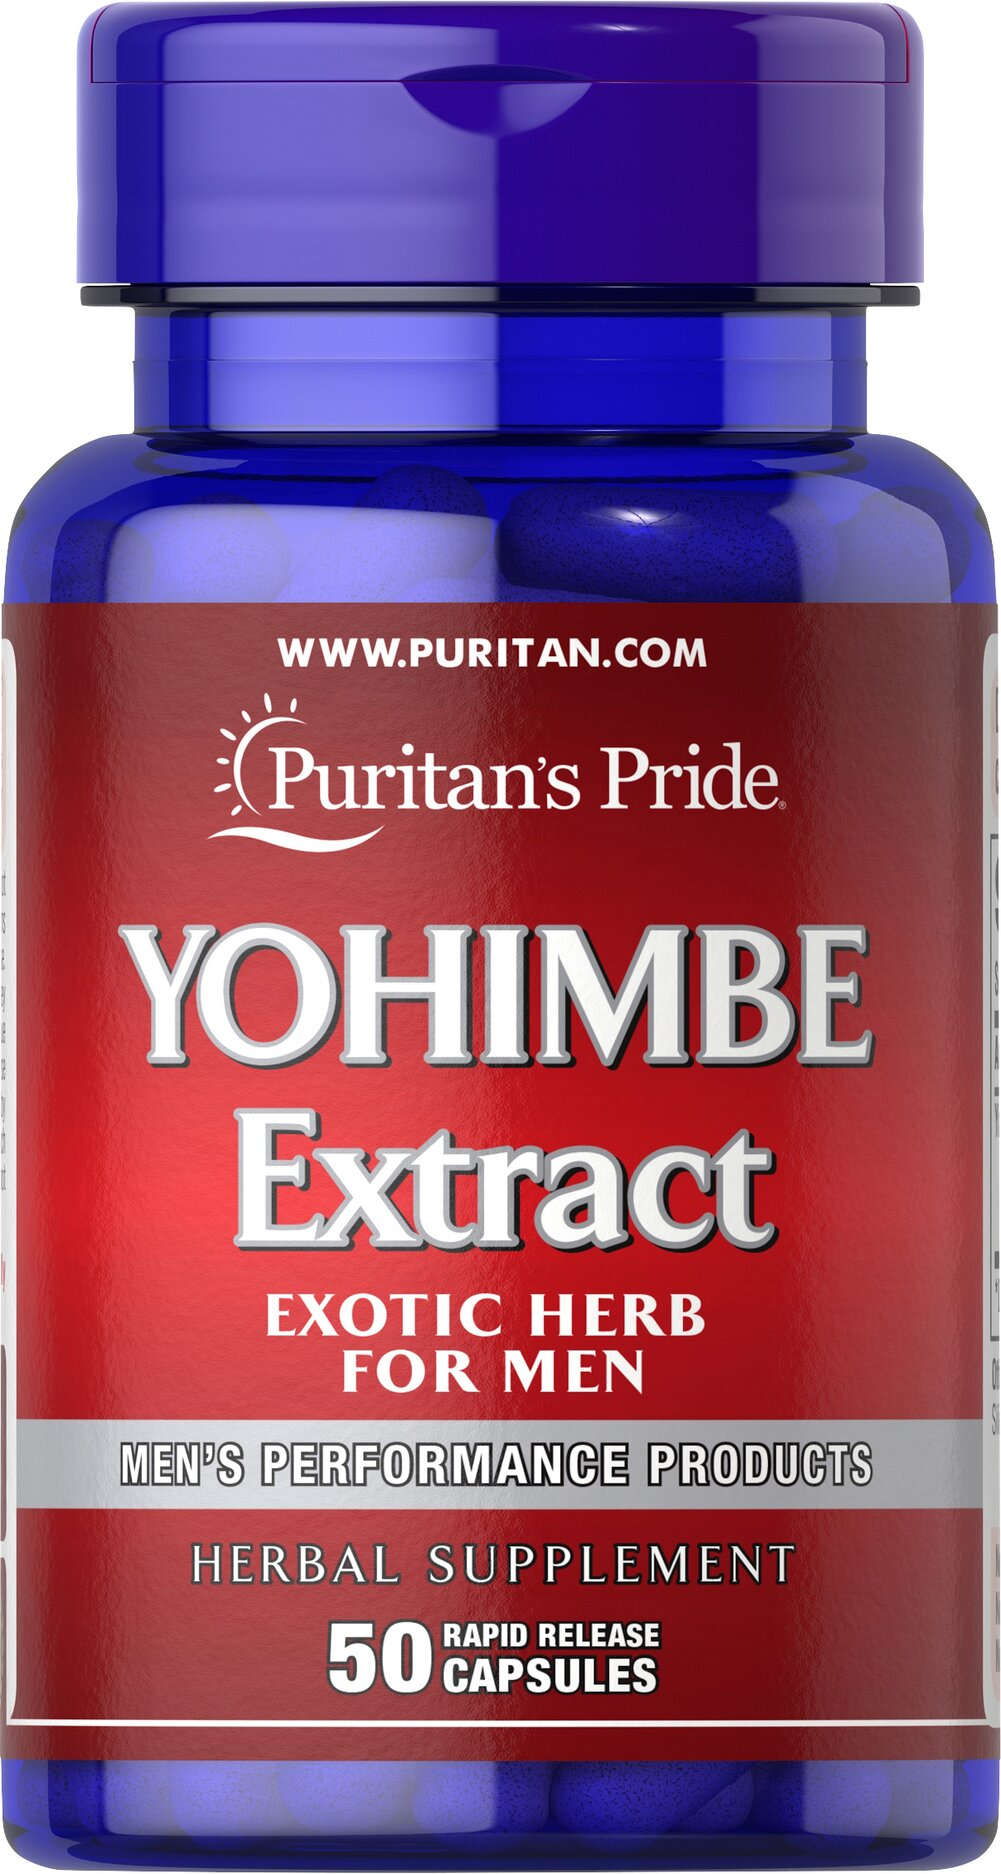 Yohimbe 2000 mg Thumbnail Alternate Bottle View